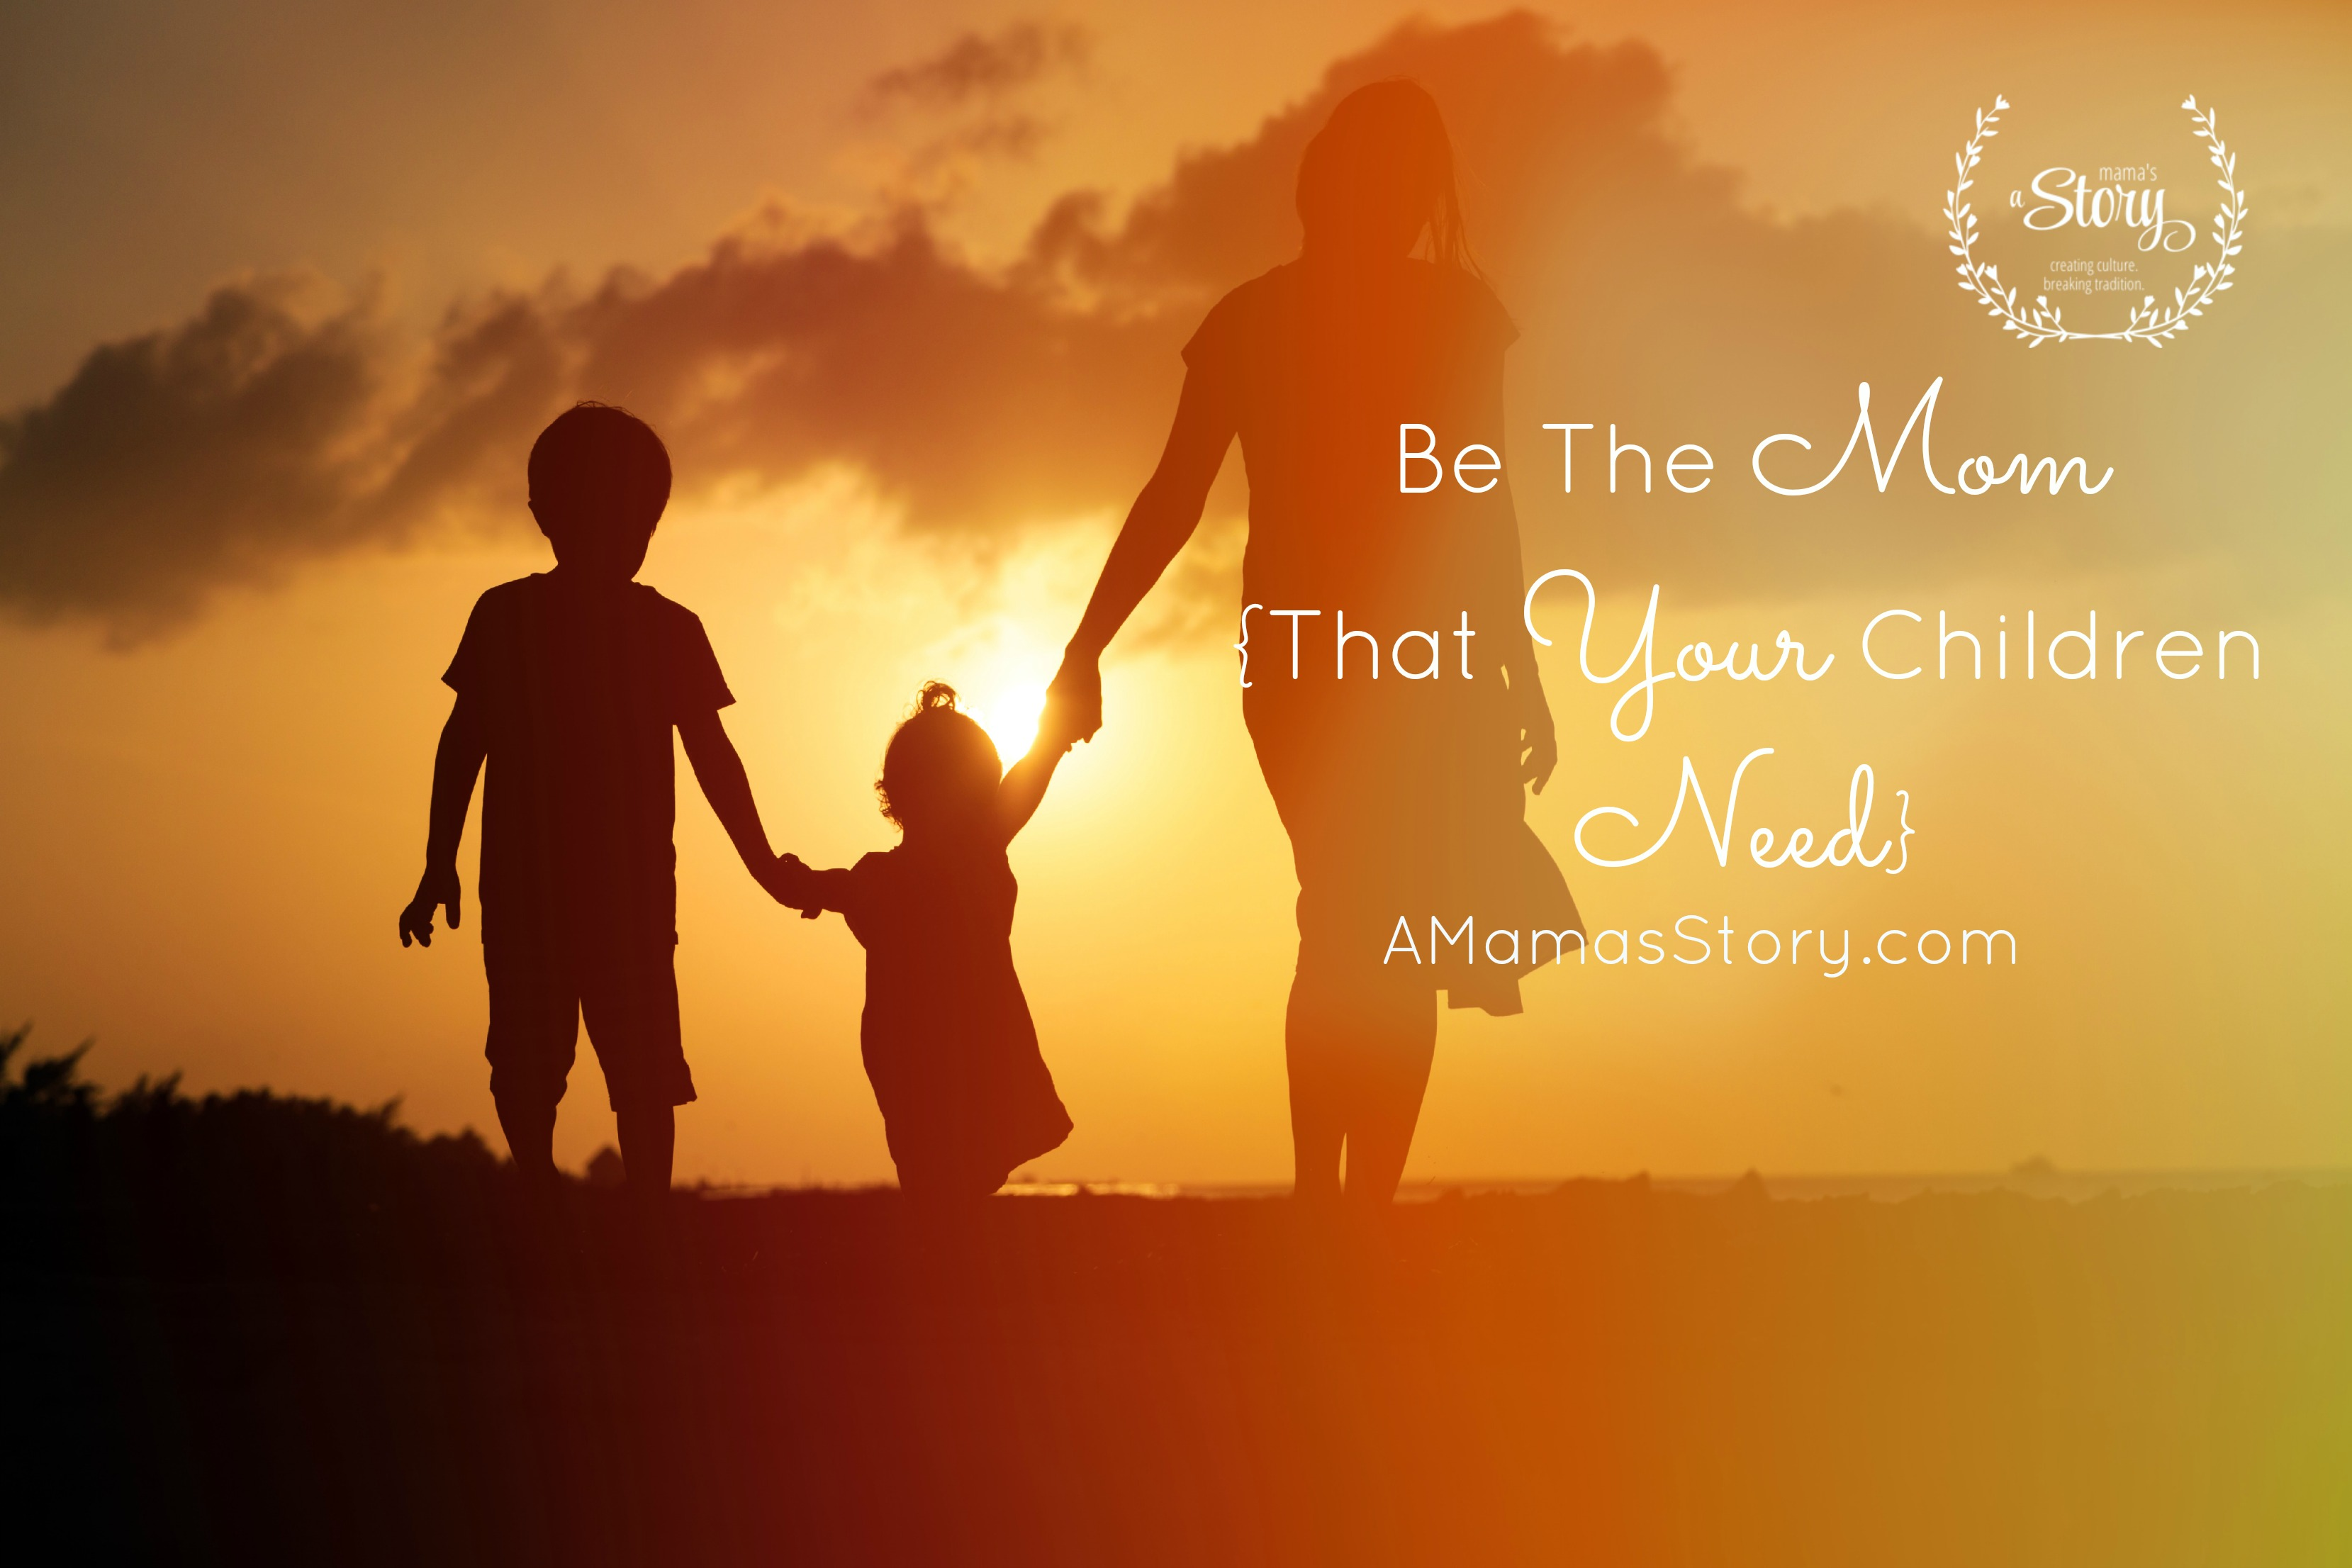 Be The Mom {That Your Children Need}